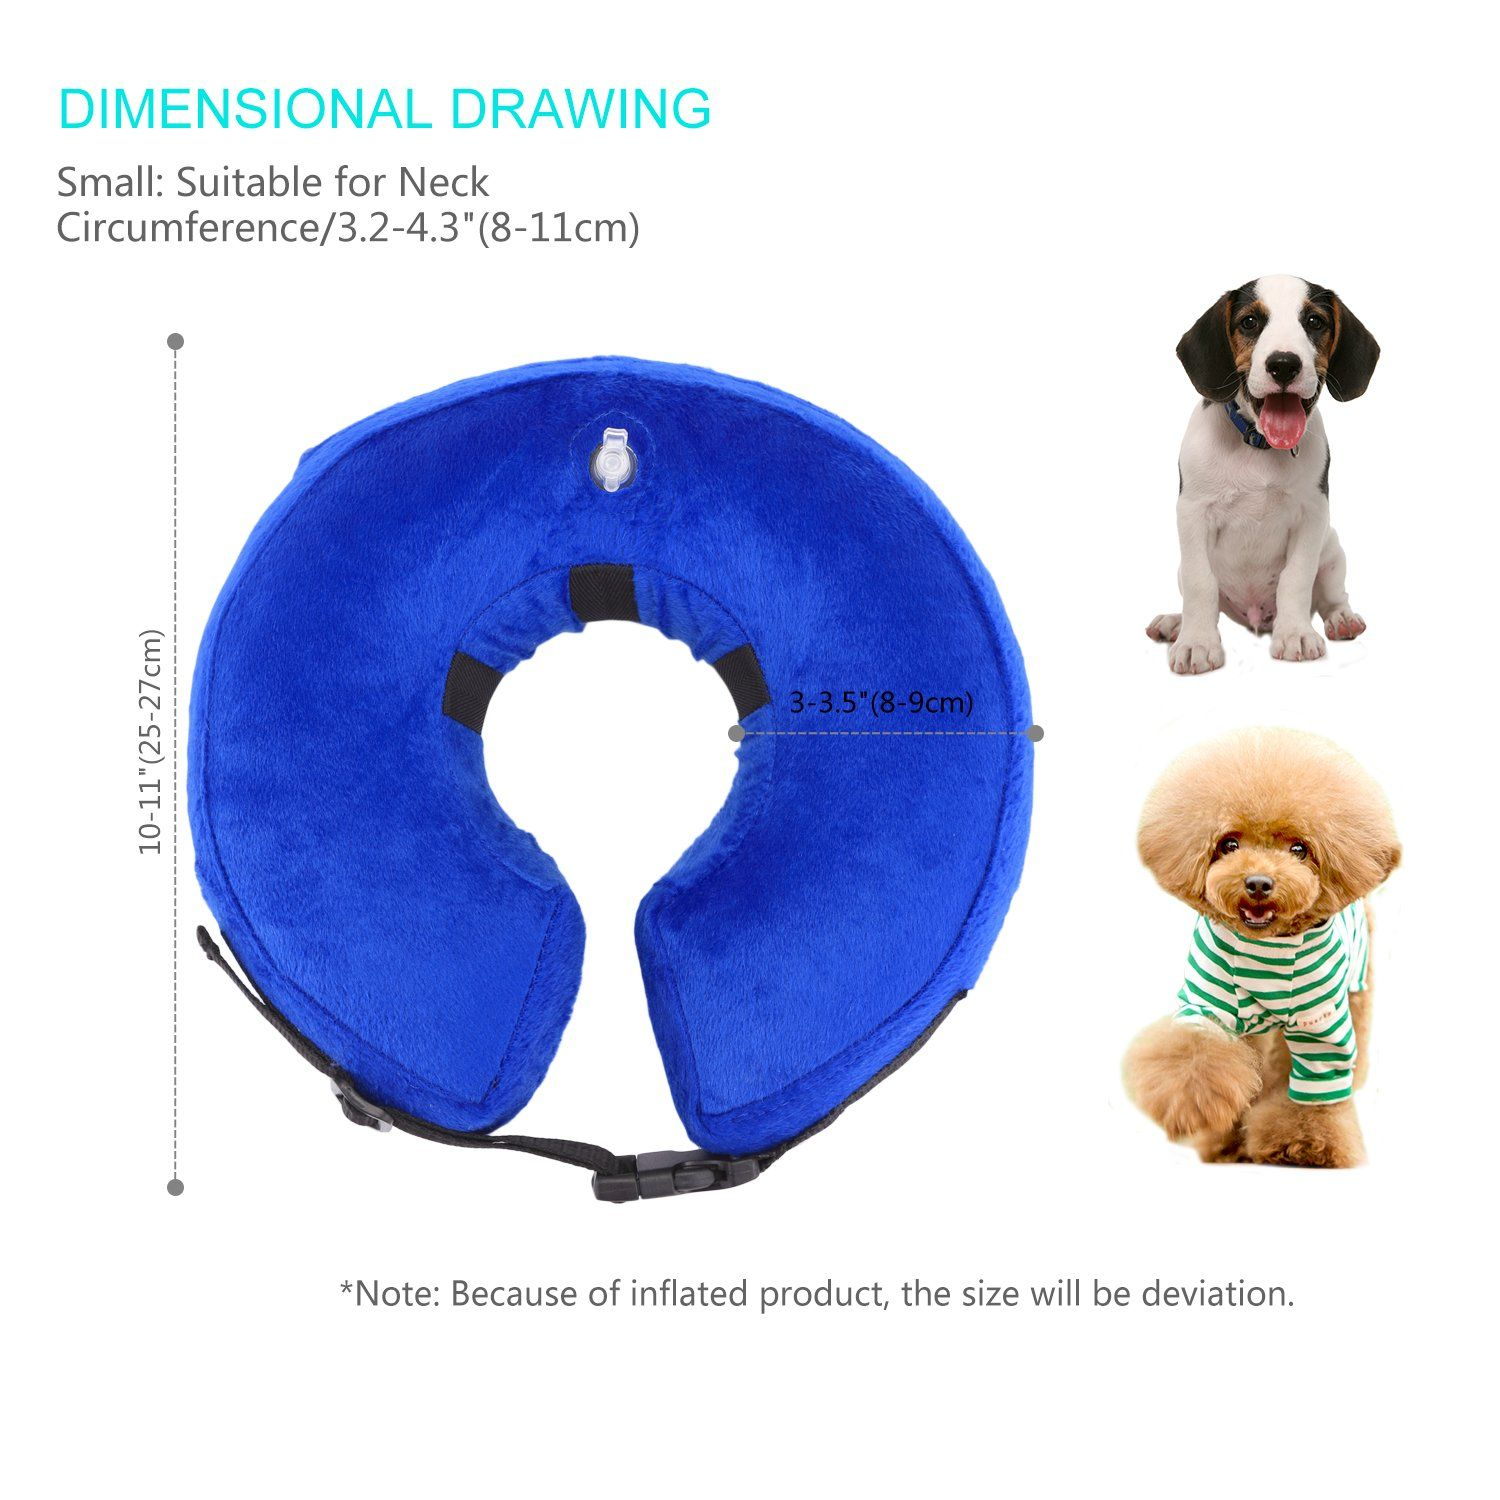 Petaz Inflatable Recovery Collar Dog Elizabethan Collar Postoperative Wound Healing Comfortable Soft Ecollar For All Size Dogs Cats M Cat Collars Dog Cat Cats